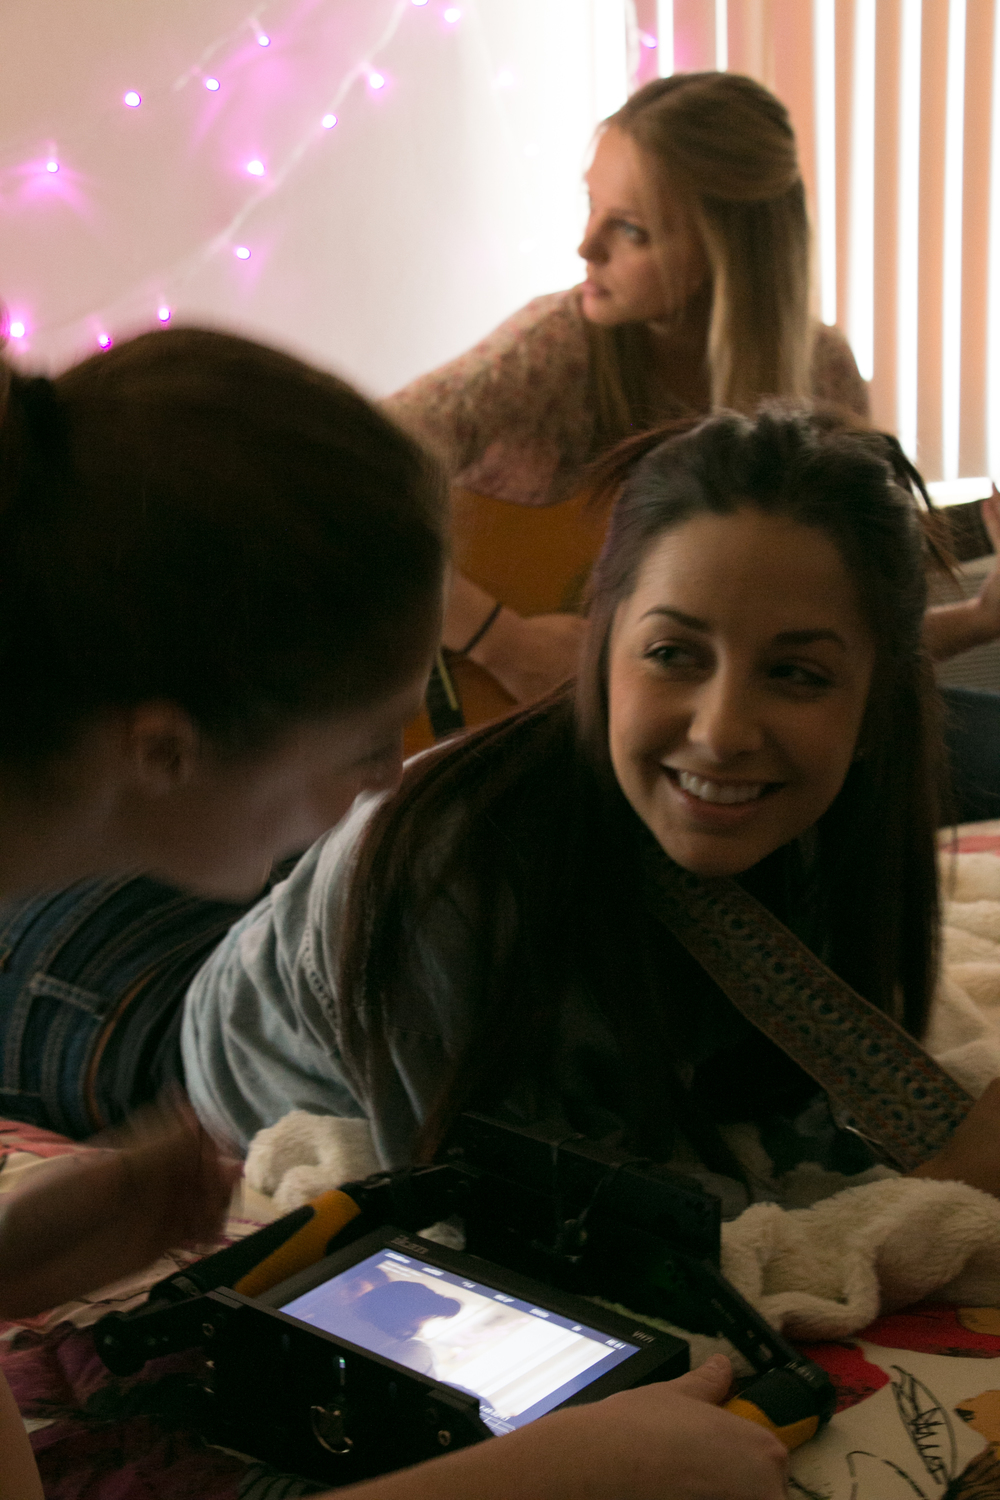 Jenna Michno practices guitar while Adriana Leonard laughs with director Dana Brawer